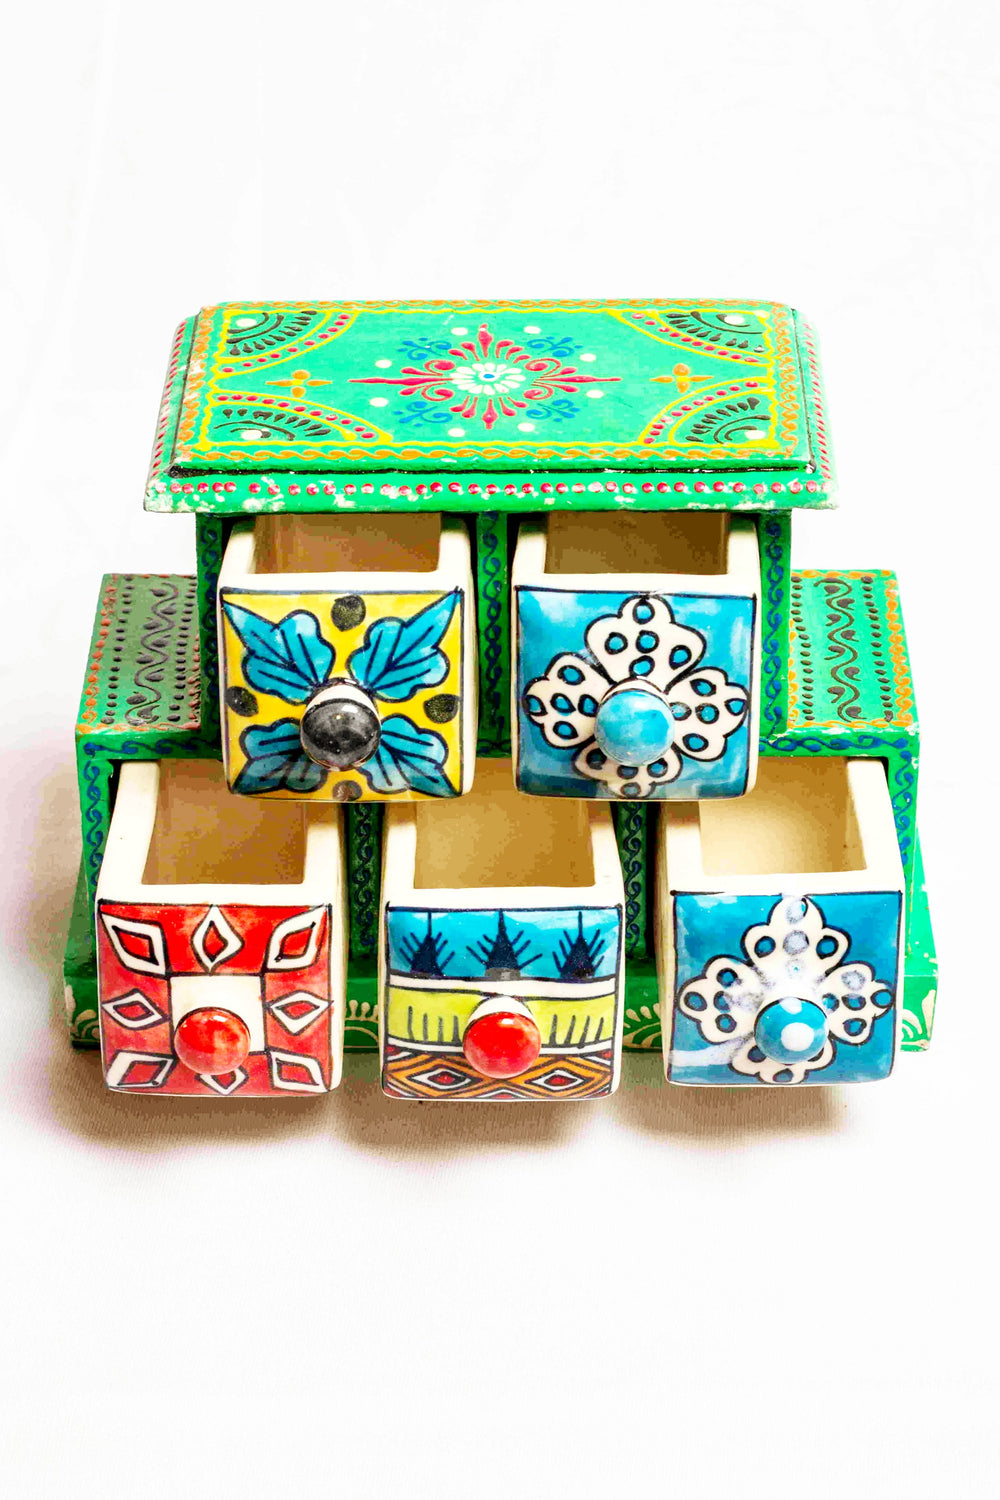 Chest of drawers in a green framed wooden box with painted motifs, with 5 ceramic drawers in green, red, and yellow